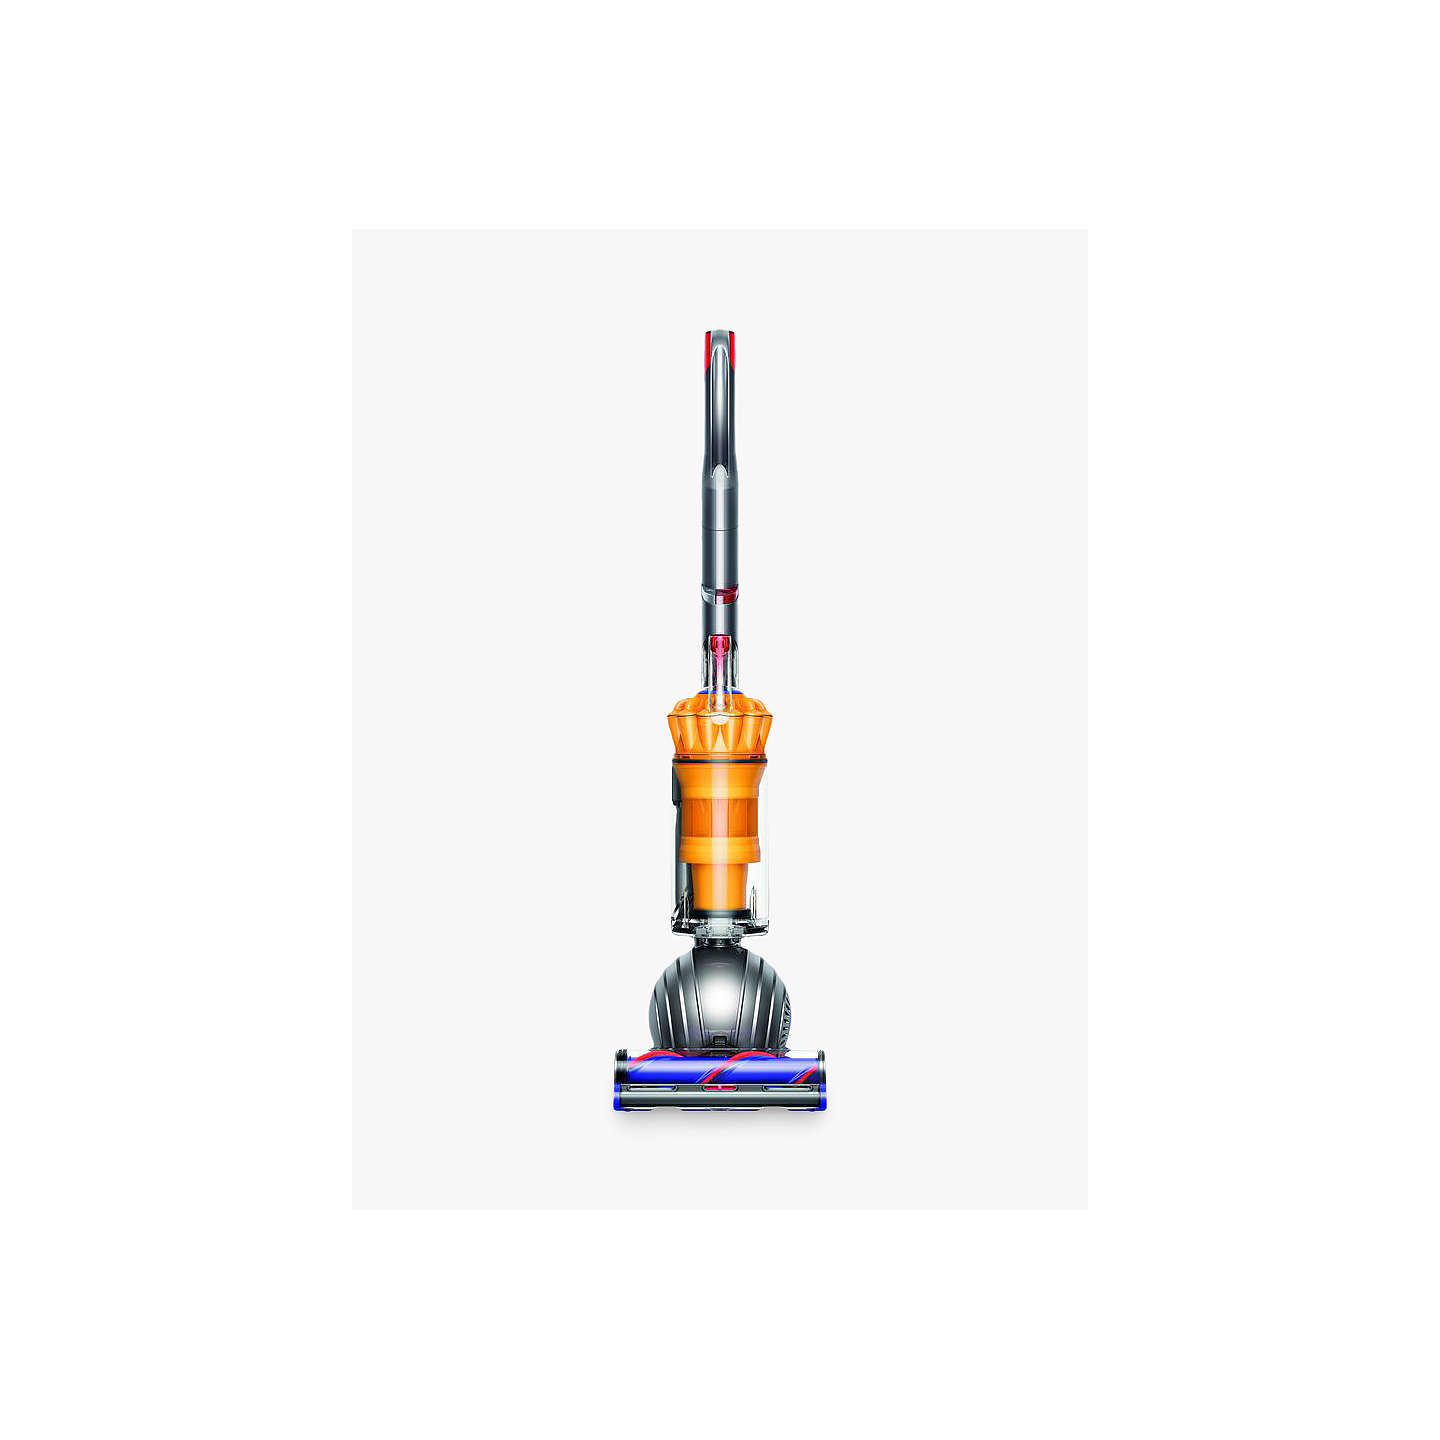 adobestock reviews floor vacuum best for comparisons hardwood floors in